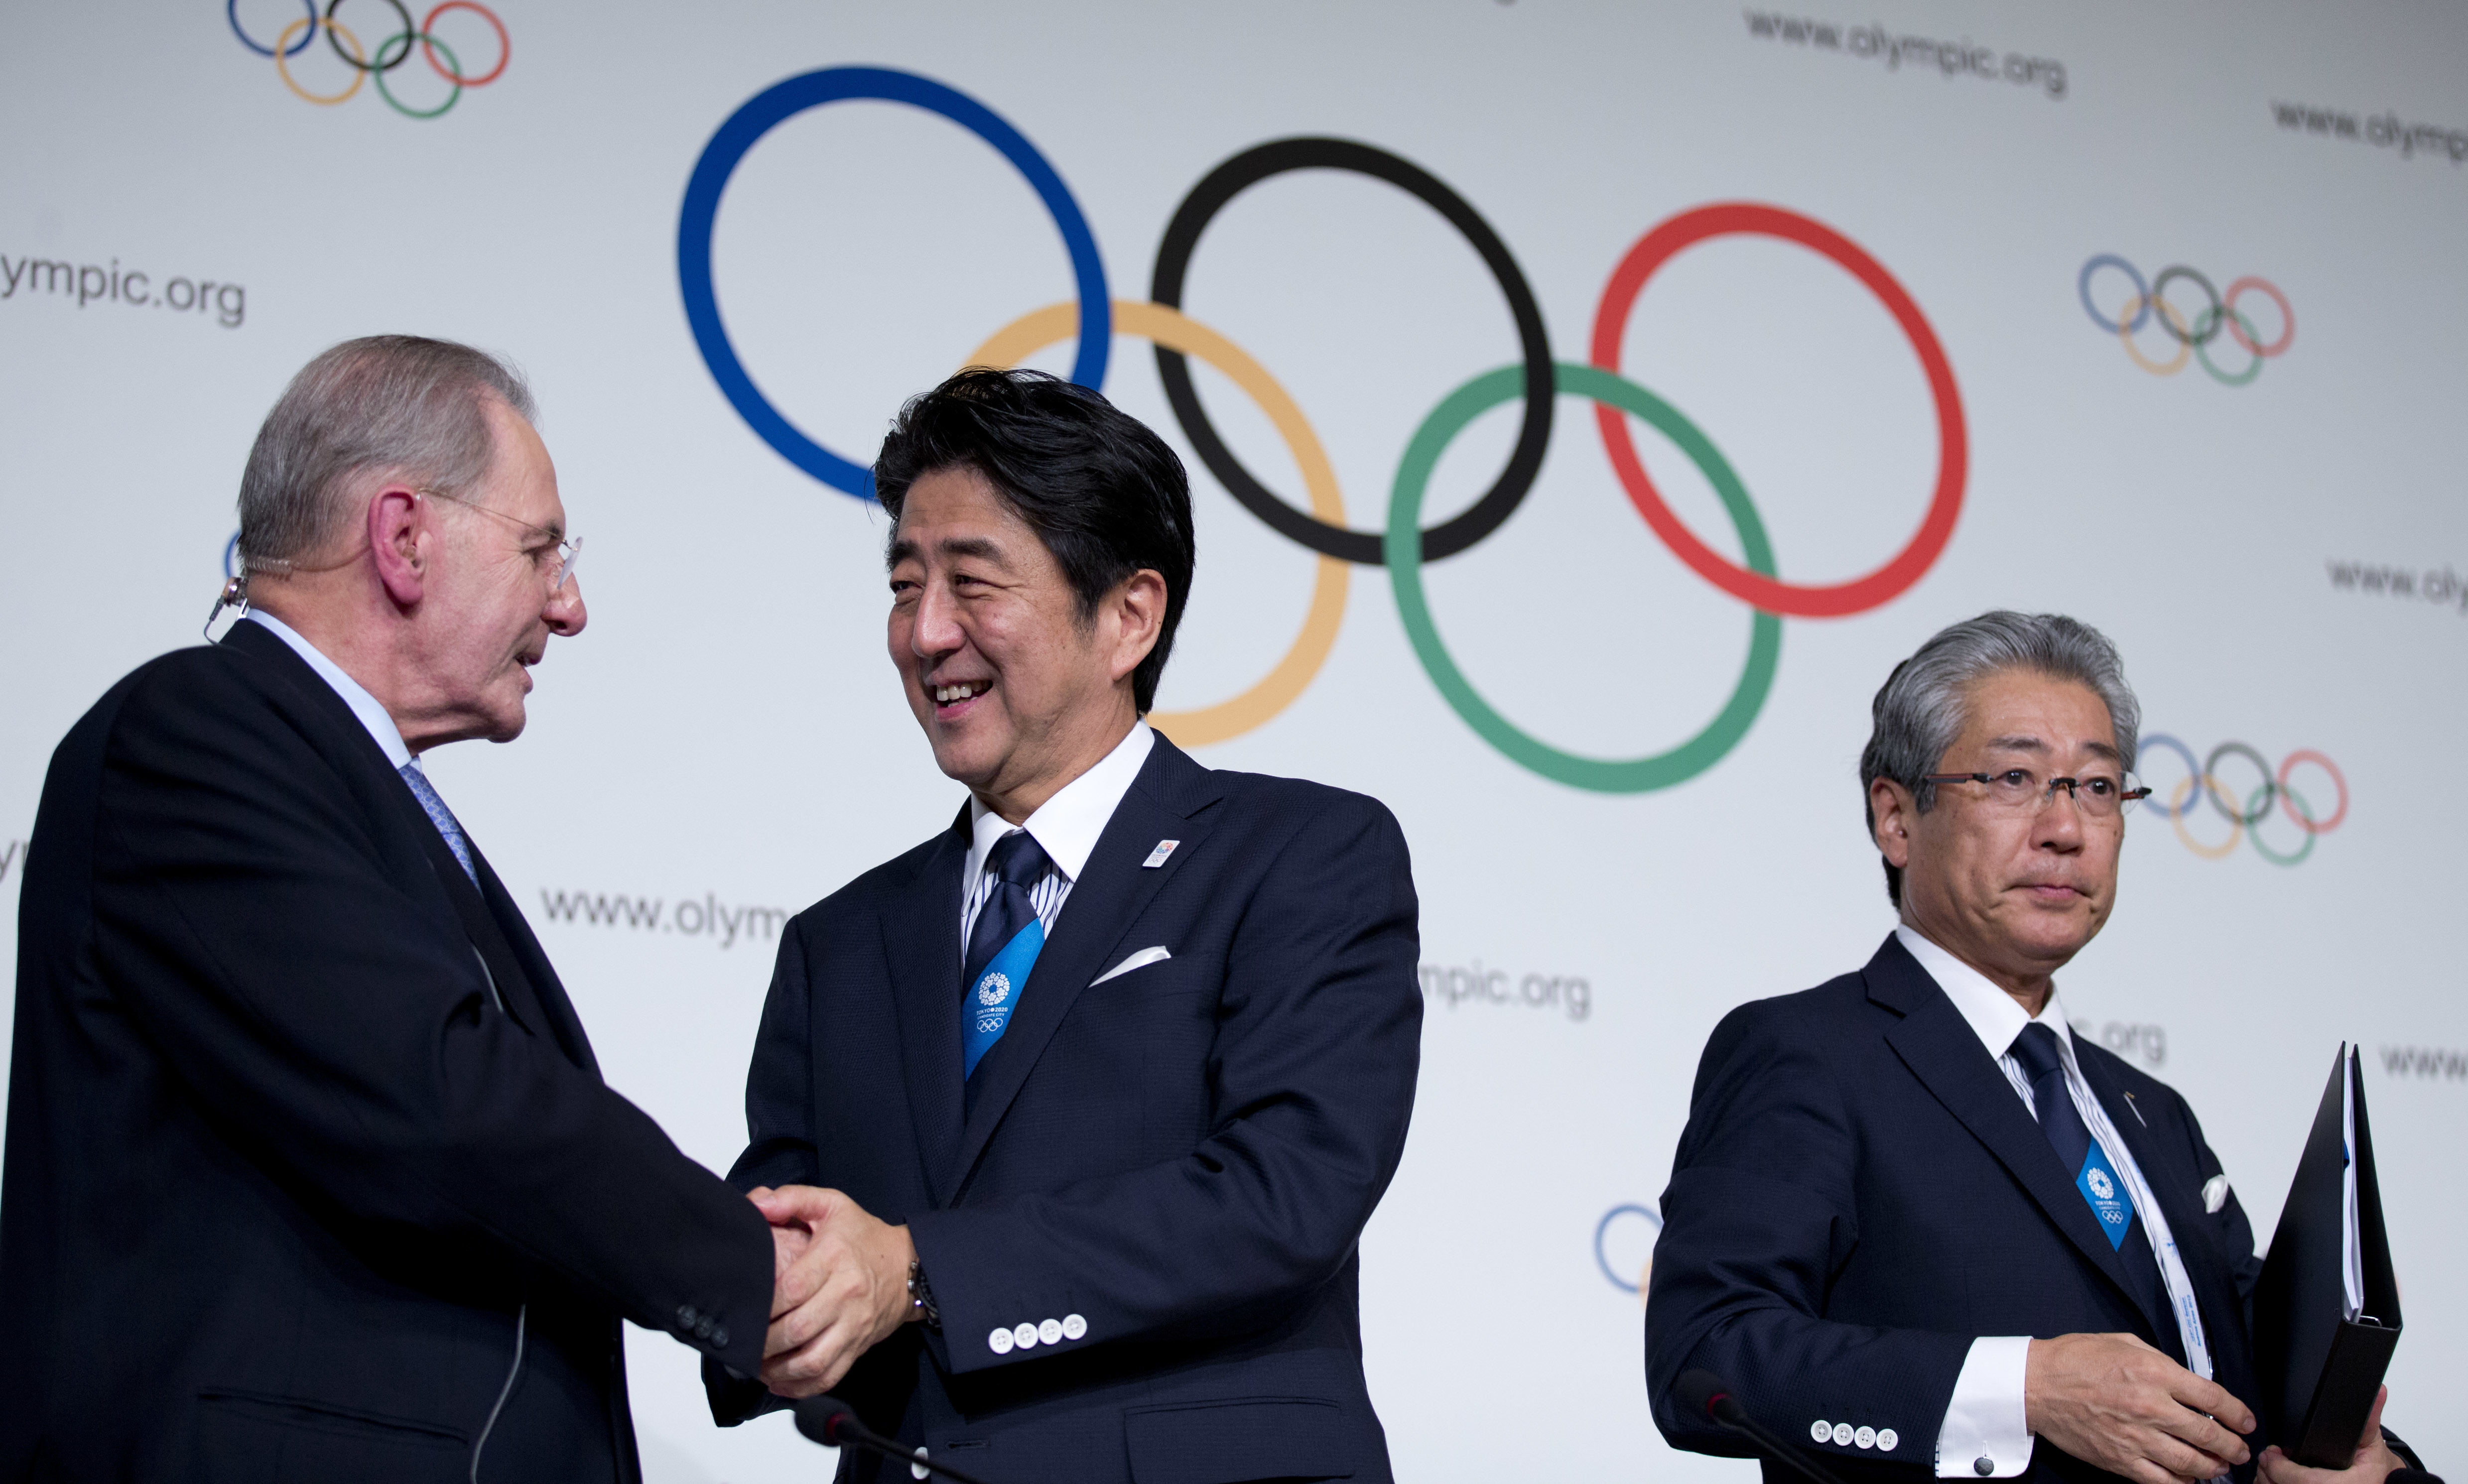 FILE - In this Sept. 7, 2013, file photo, Japan's Prime Minister Shinzo Abe, center, shakes hands with President of the International Olympic Committee Jacques Rogge as Tokyo 2020 Olympic Bid Committee President Tsunekazu Takeda stands by after signing th